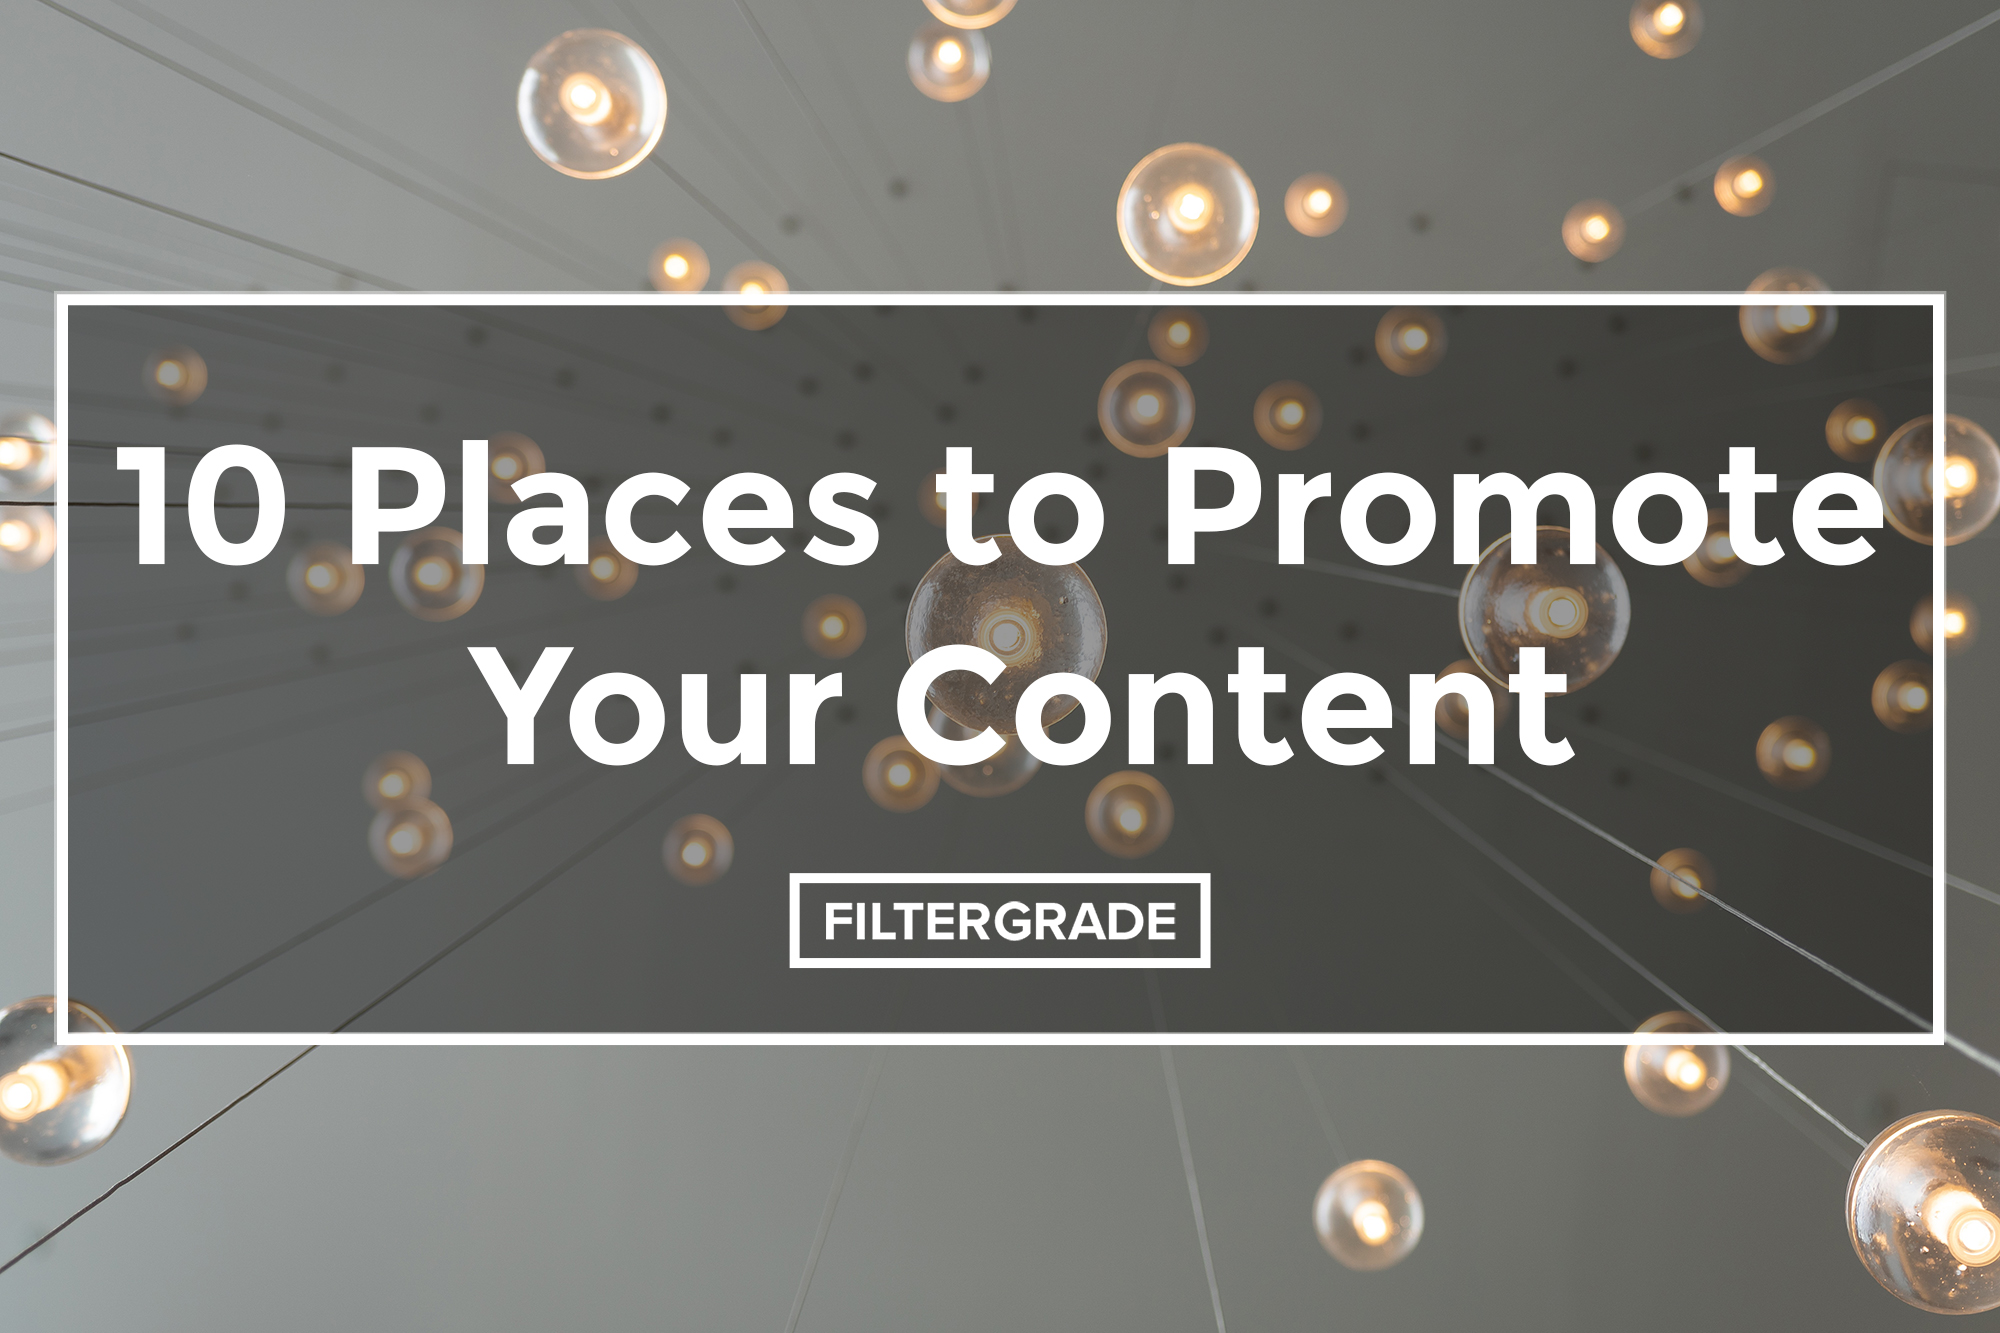 10 Places to Promote Your Content - FilterGrade